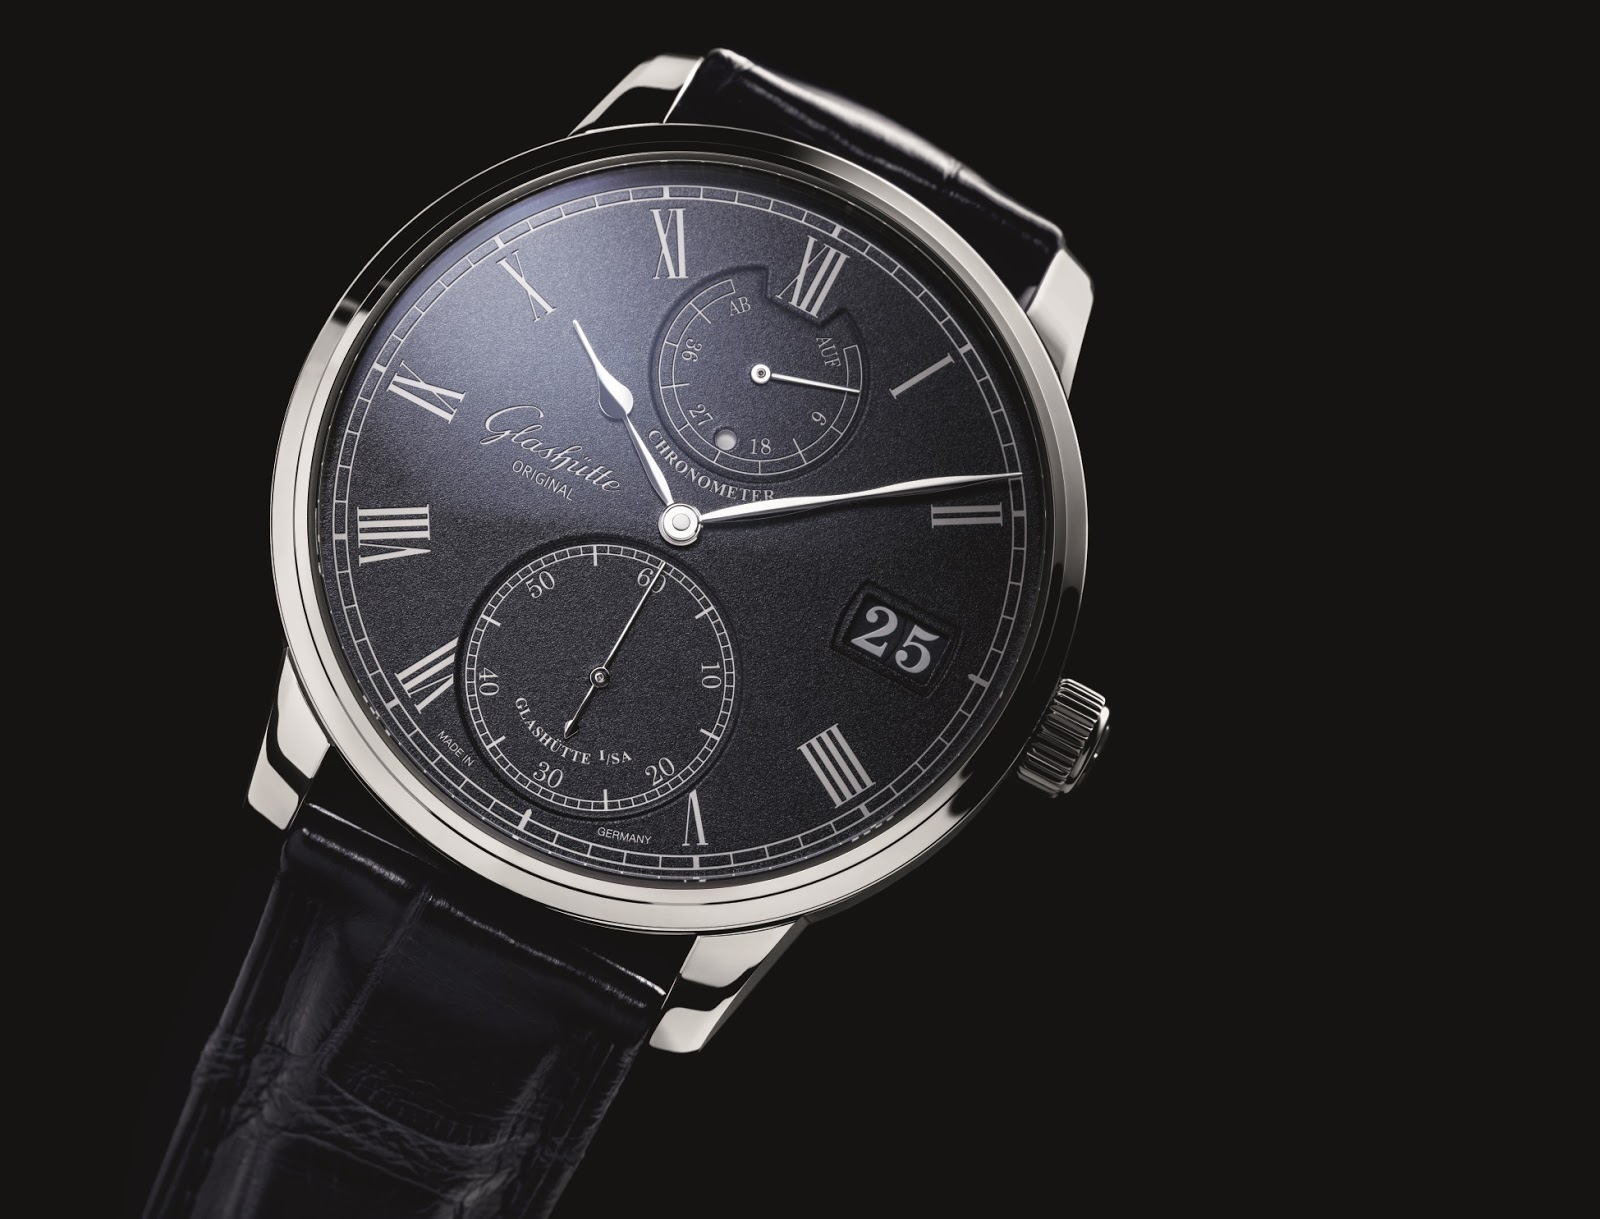 Black Dial Glashütte Original Senator Chronometer Replica Watch